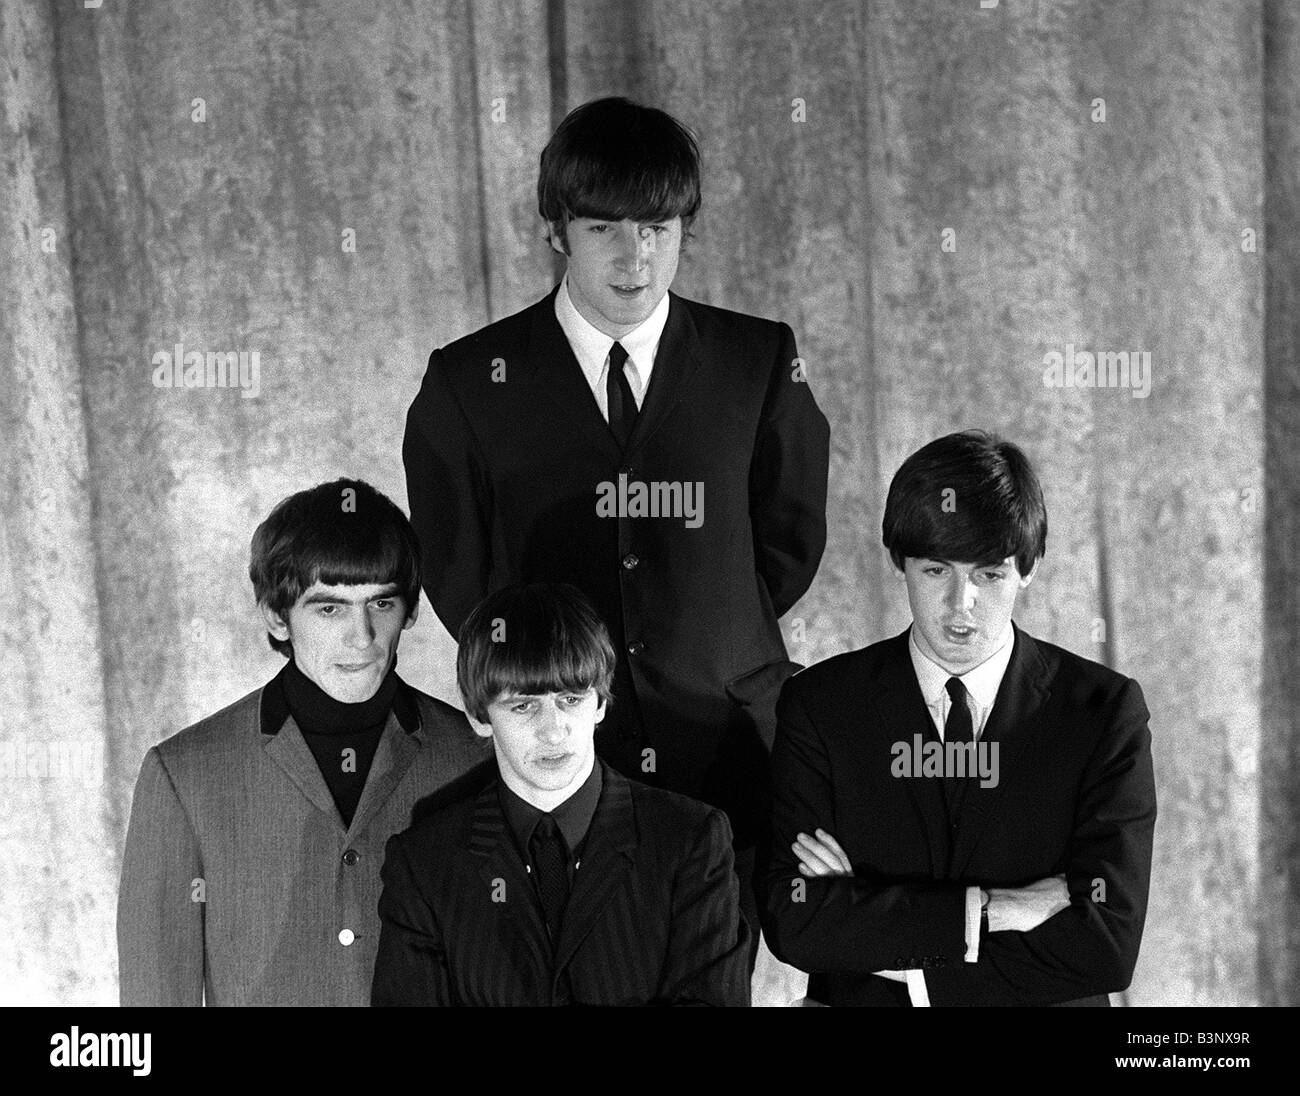 The Beatles February 1964 John Lennon Paul McCartney Ringo Starr George Harrison In New York During A Photo Shoot